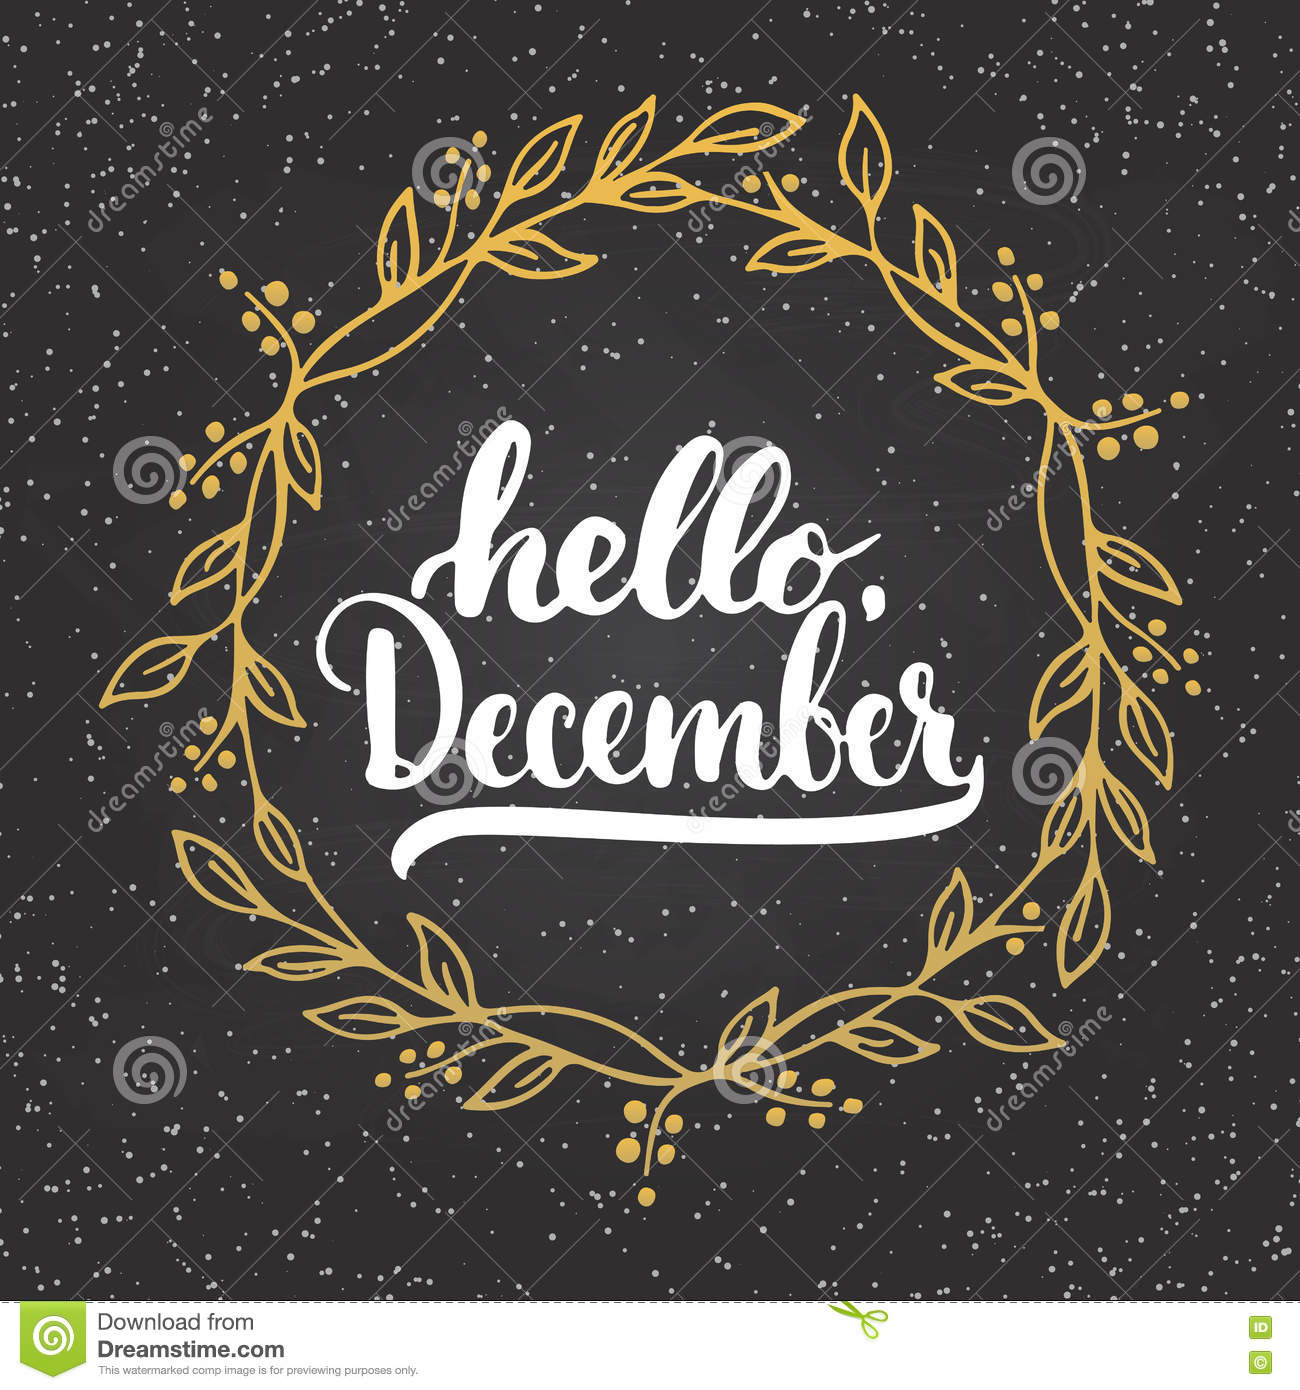 Hand drawn typography lettering phrase Hello, December isolated on the chalkboard background with golden wreath